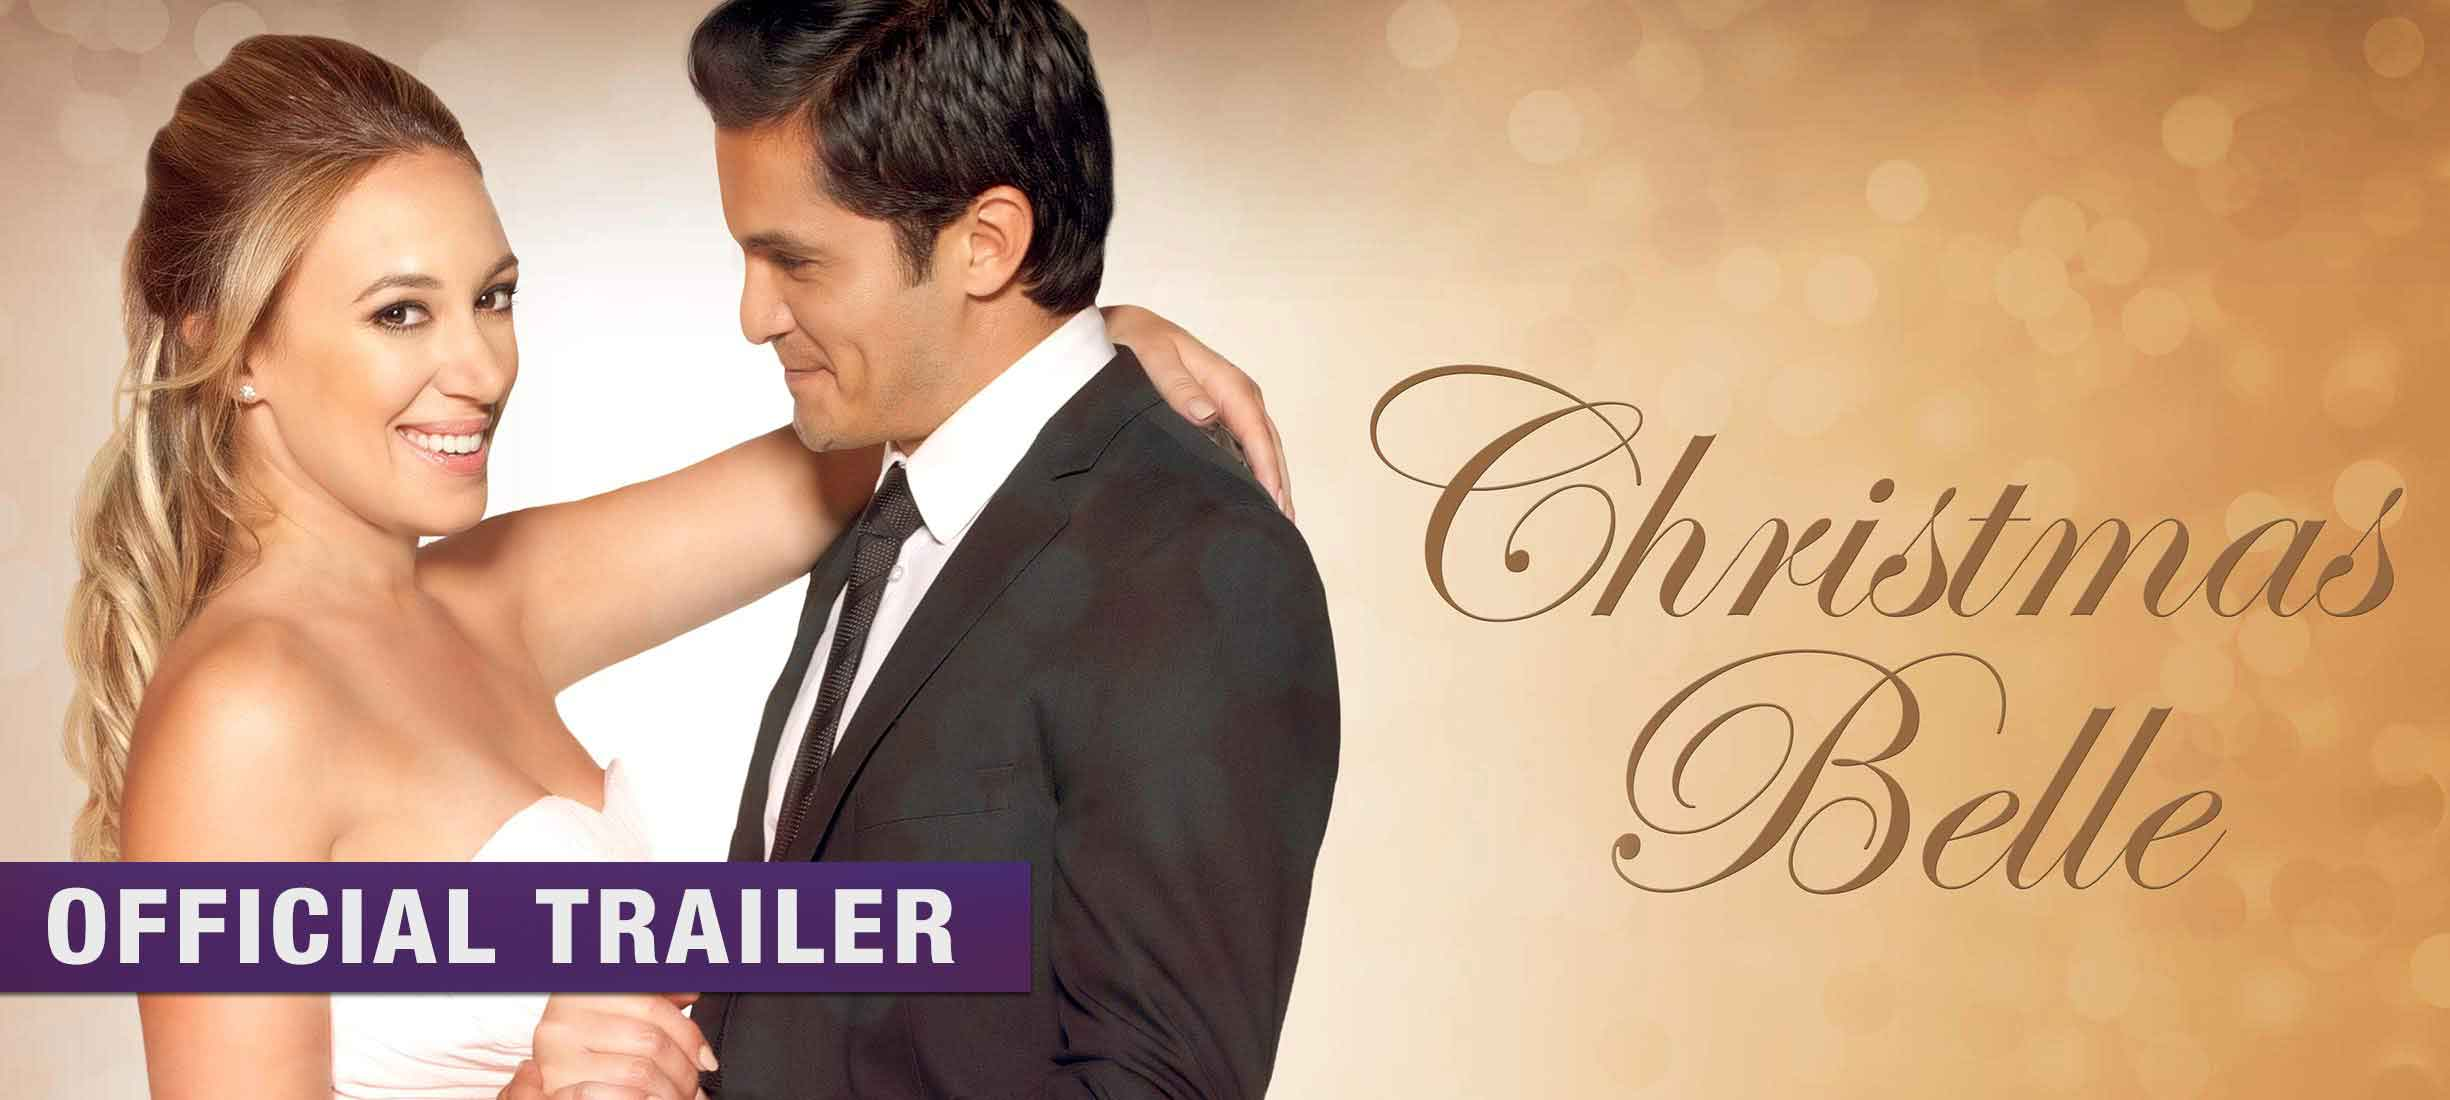 Christmas Belle: Trailer